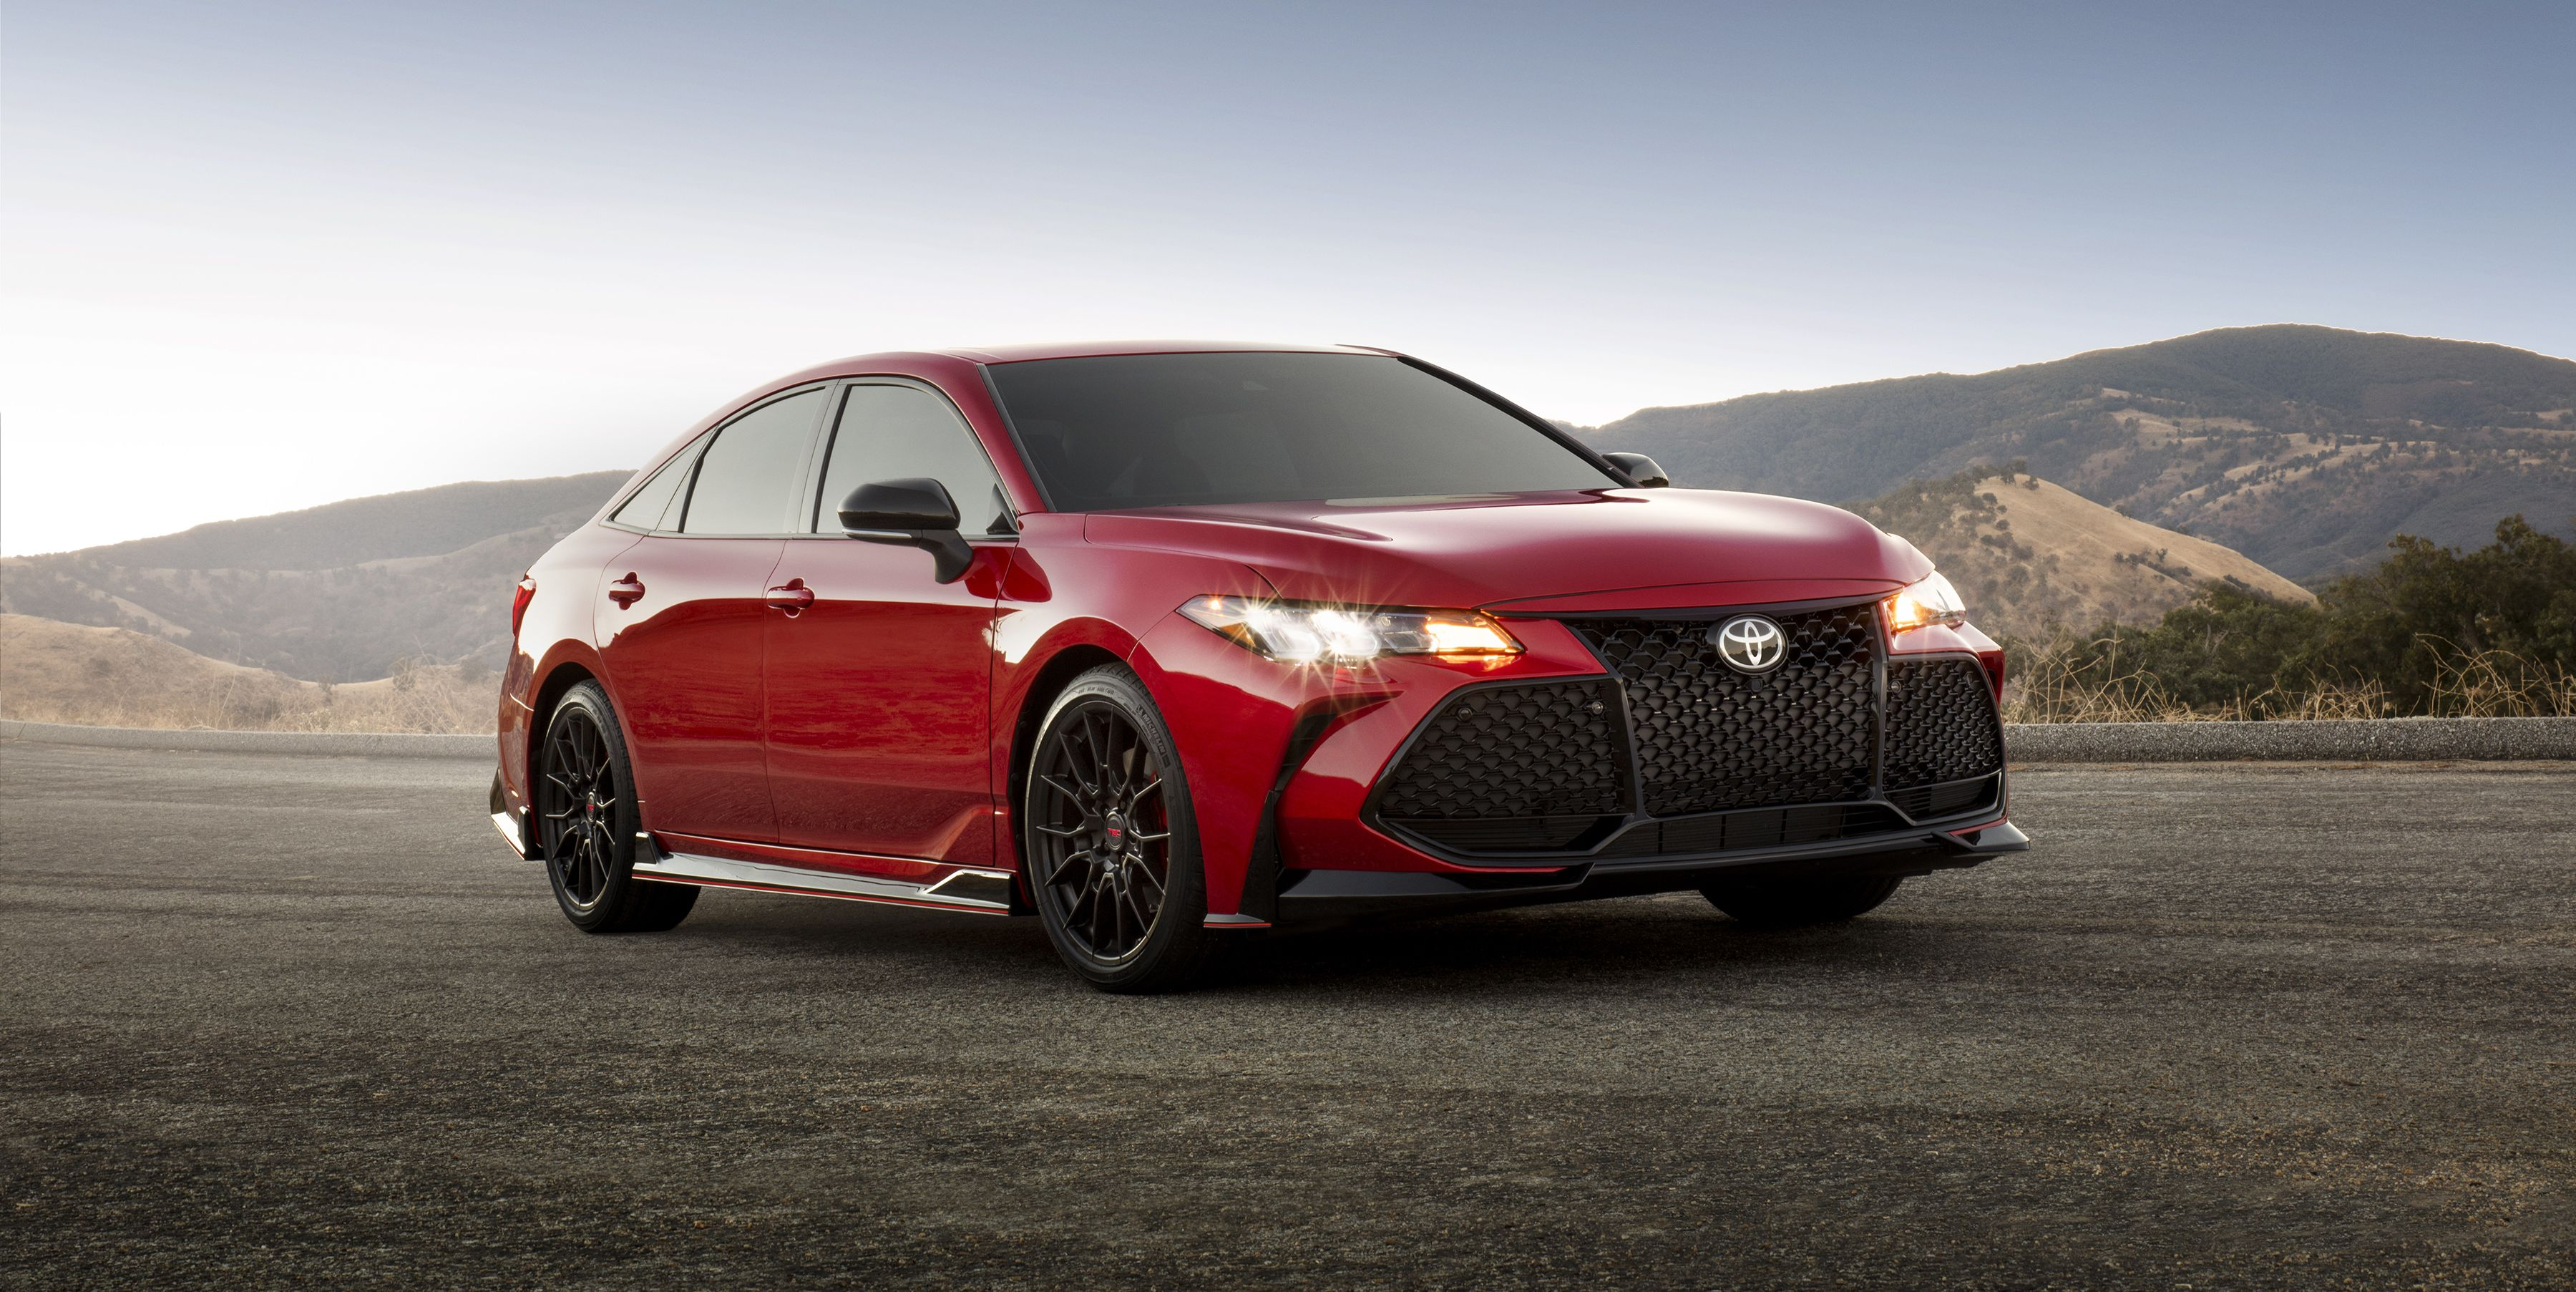 Used Toyota Avalon For Sale >> 2020 Toyota Avalon TRD Gets Performance Tuning, Aggressive Looks